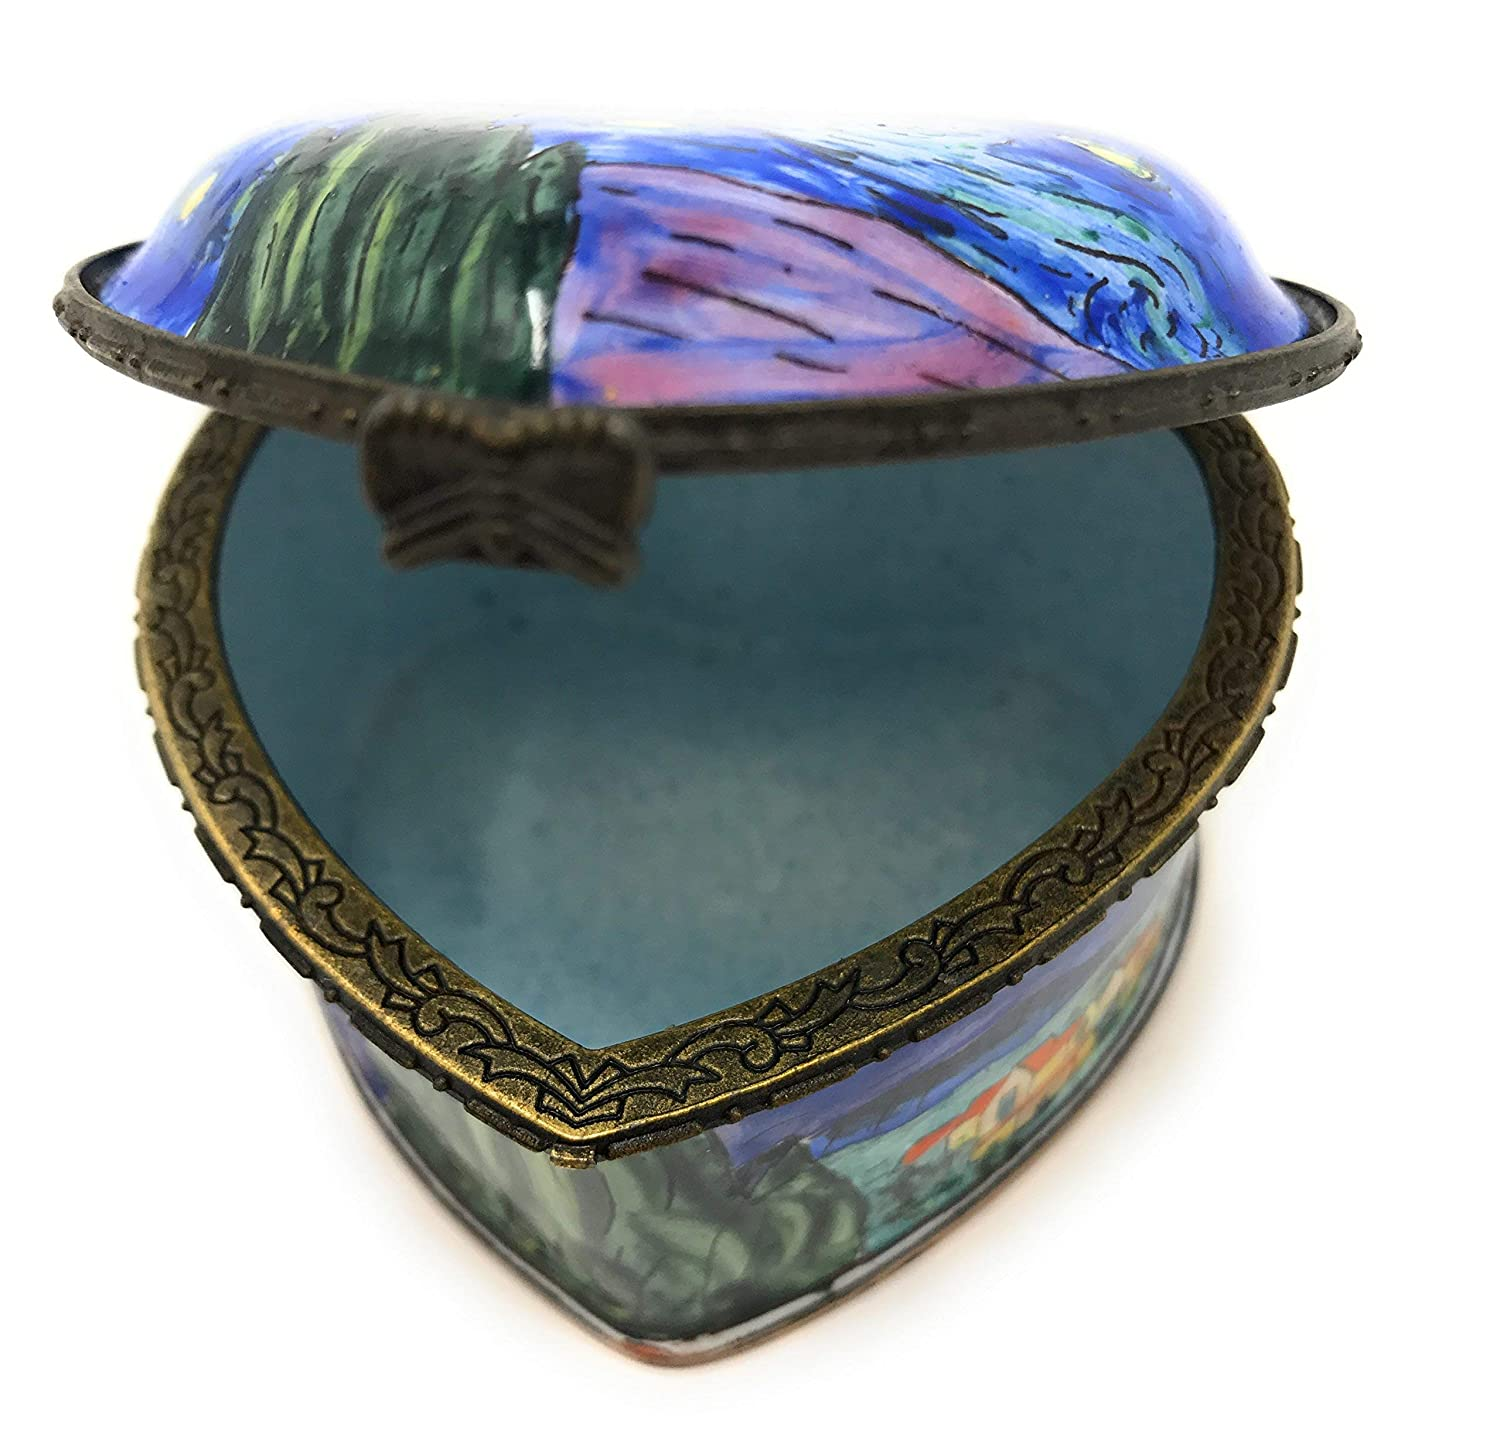 Kelvin Chen Vincent Van Gogh Starry Night Heart Shaped Enameled Trinket Box 2.75 Inches Long